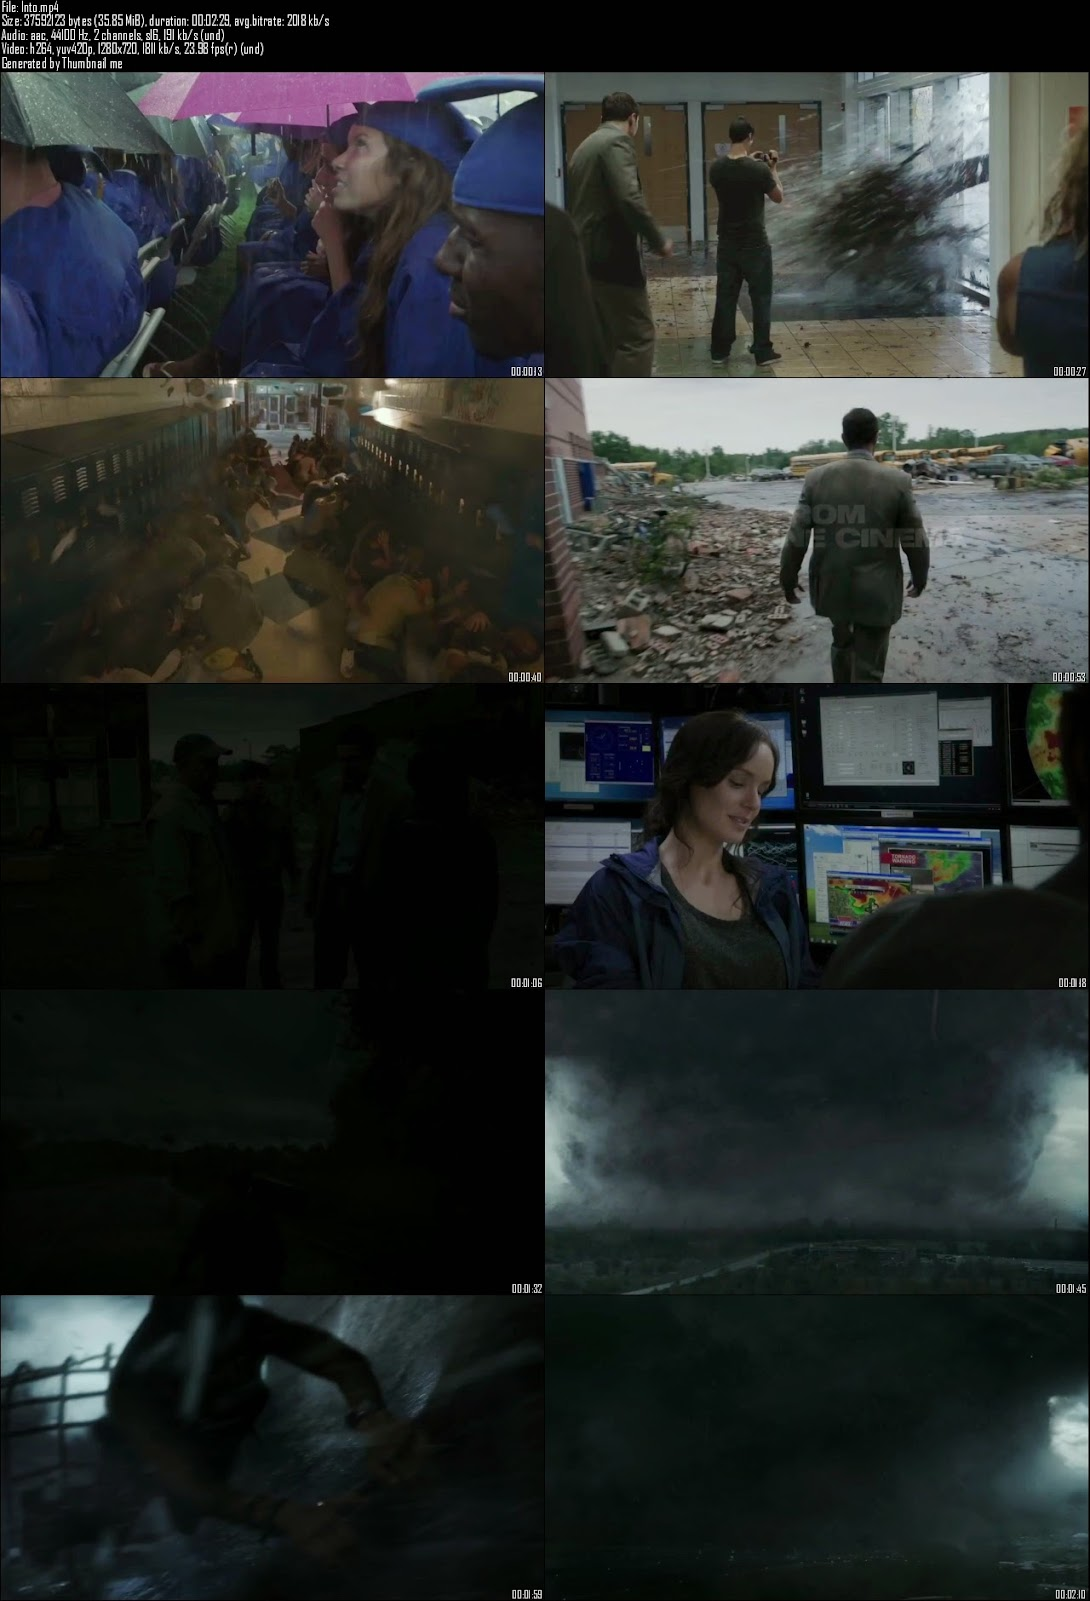 Mediafire Resumable Download Link For Teaser Promo Of Into the Storm (2014)